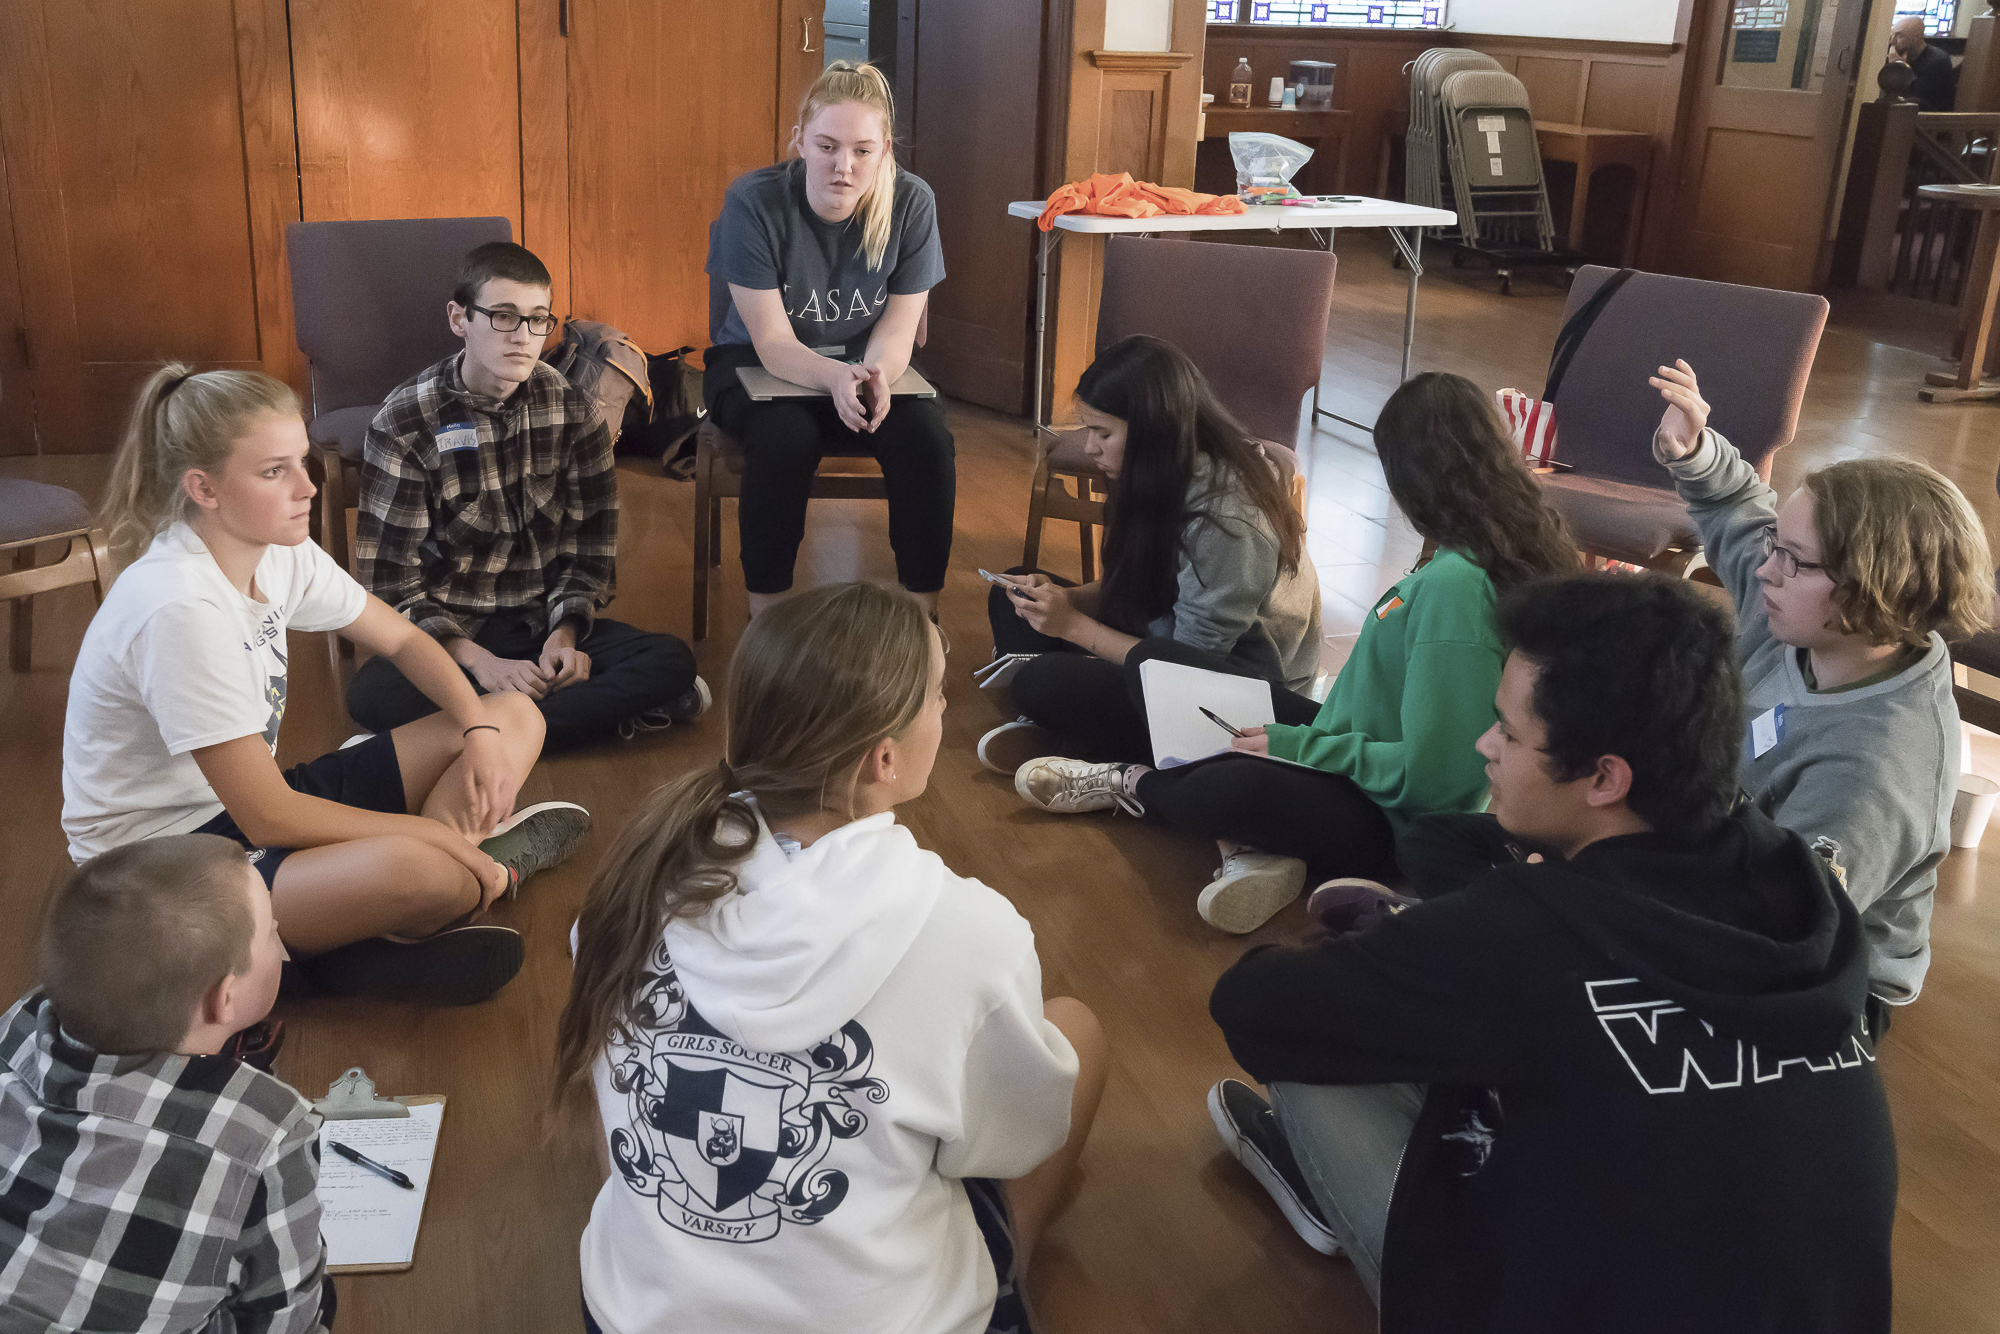 Students from several Los Angeles area high schools met in Santa Monica, California on Tuesday, April 17, 2018 to discuss a planned walkout and protest rally at Santa Monica City Hall on Friday, April 20. Clockwise from top center: Camille Hannant, Maddie Fenster, Aislinn Russell, Spencer Newman, Lorenzo De Los Reyes, Lea Yamashiro, Roger Gawne, Siri Storstein, and Travis Ackermann.  (Helena Sung/Corsair Staff)